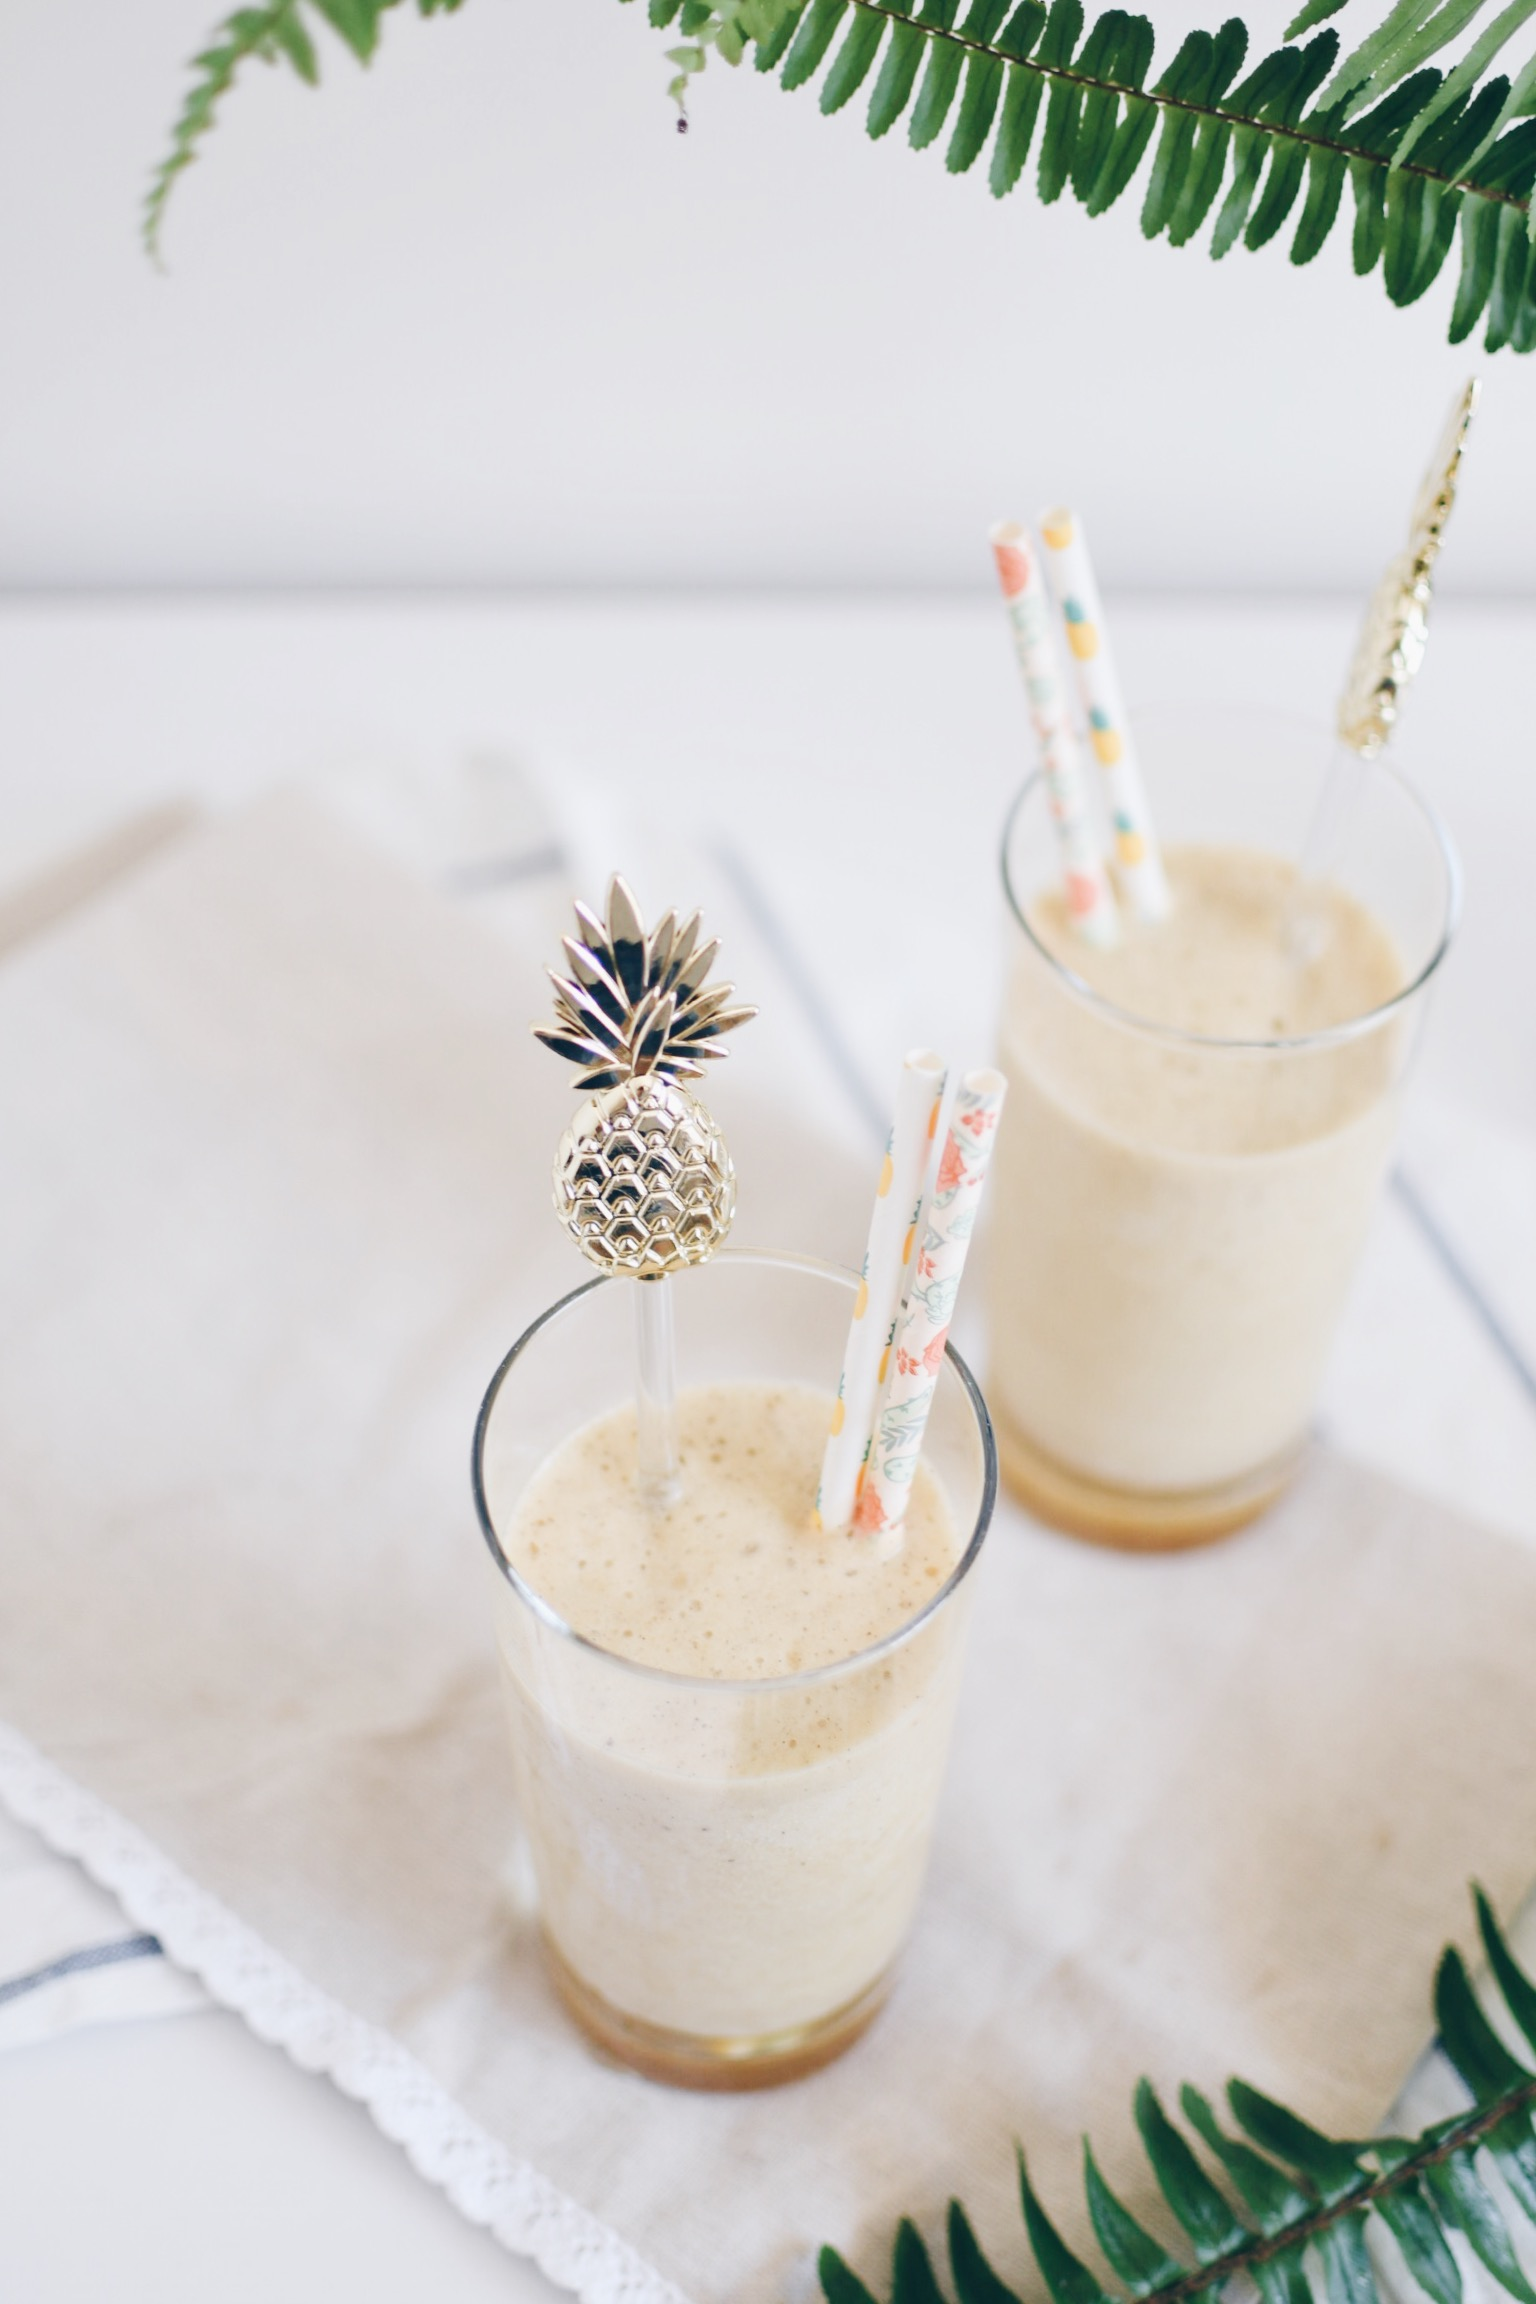 vital proteins pineapple coconut smoothie